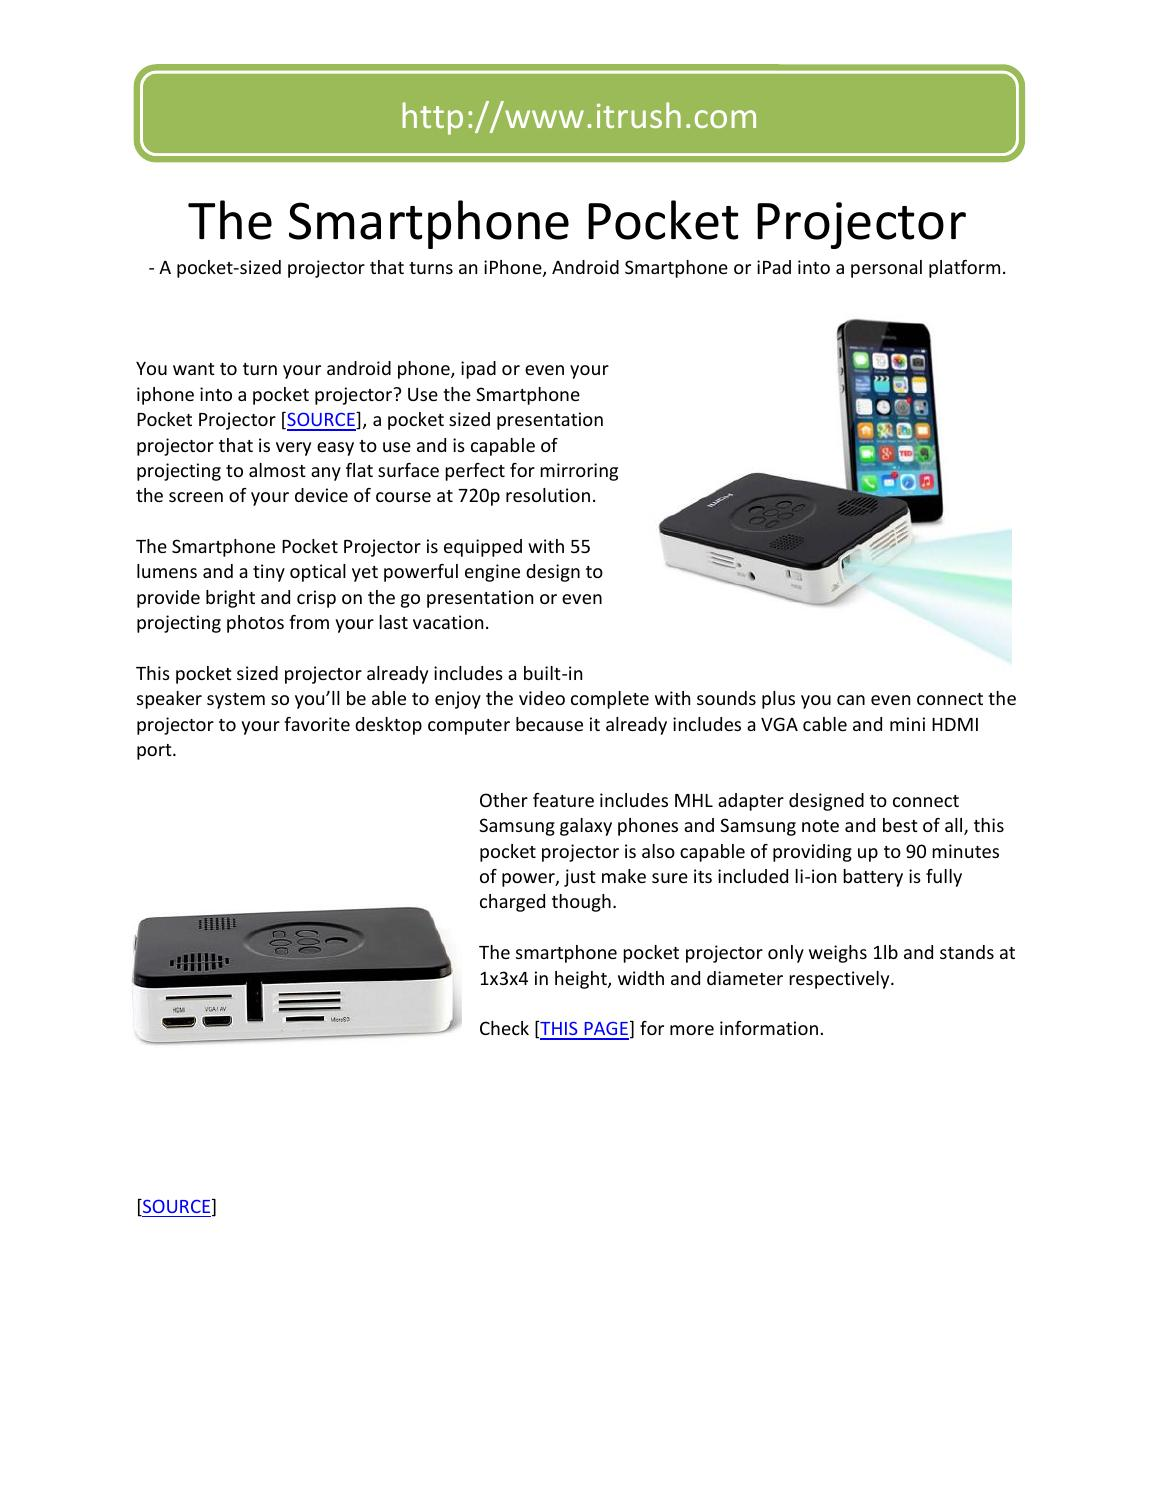 how to connect smartphone to projector